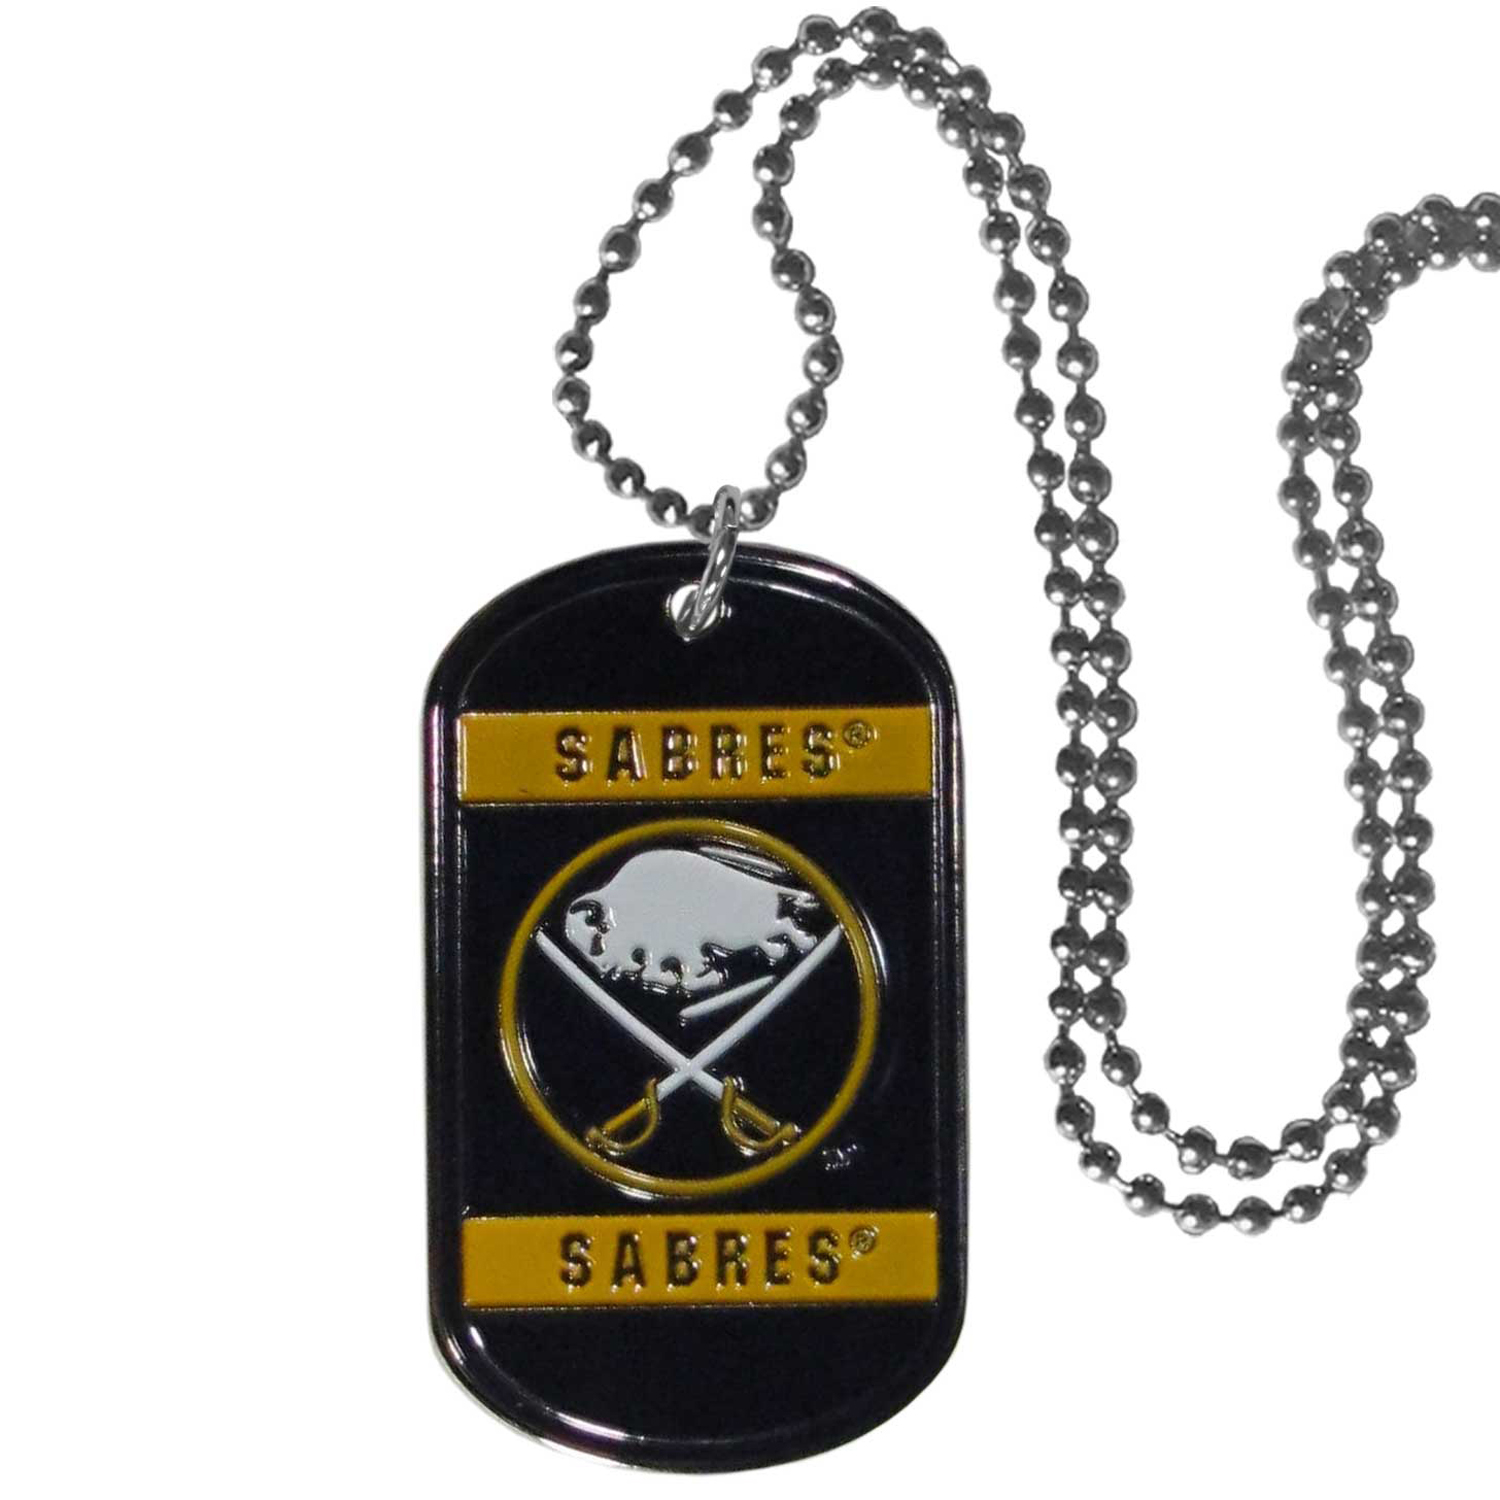 Buffalo Sabres® Tag Necklace - Expertly crafted Buffalo Sabres® tag necklaces featuring fine detailing and a hand enameled finish with chrome accents. 26 inch chain.